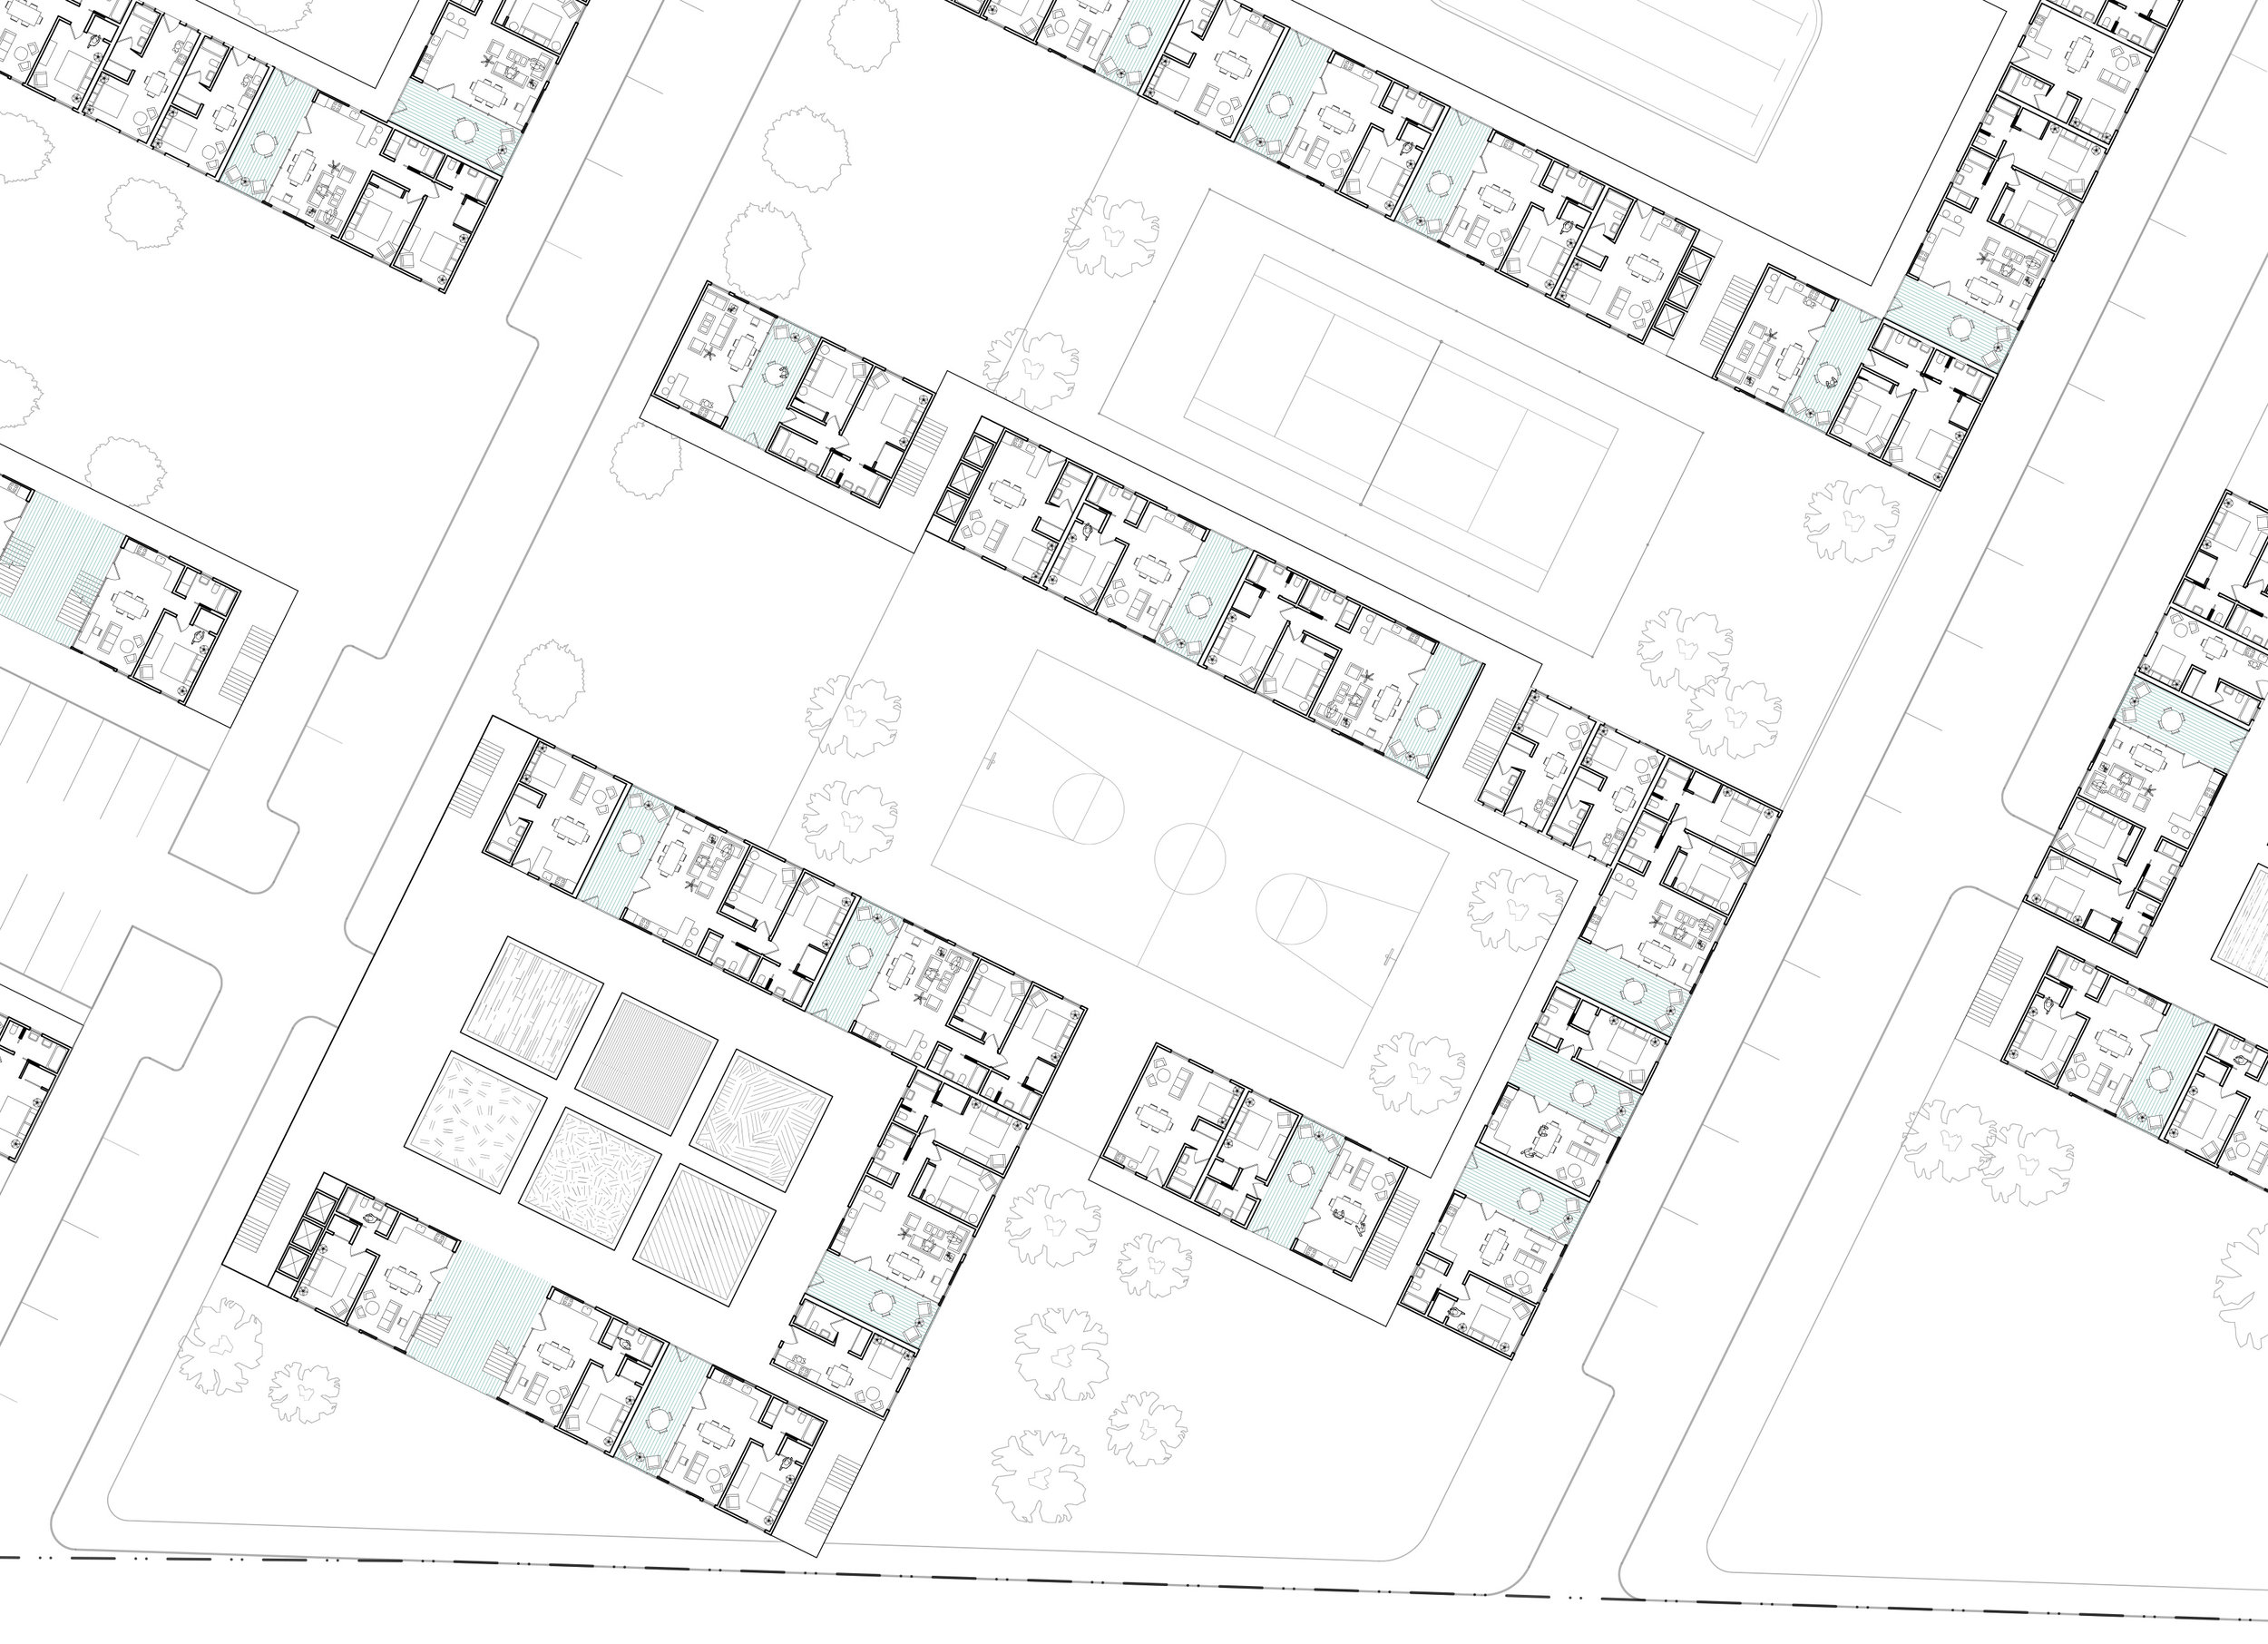 Variable System The formal system is derived from the courtyard type, but extends across streets. Unit orientation permits tenants to visually claim distant greens. Gardens set atop the parking garages permit communal aggregation above level 1.